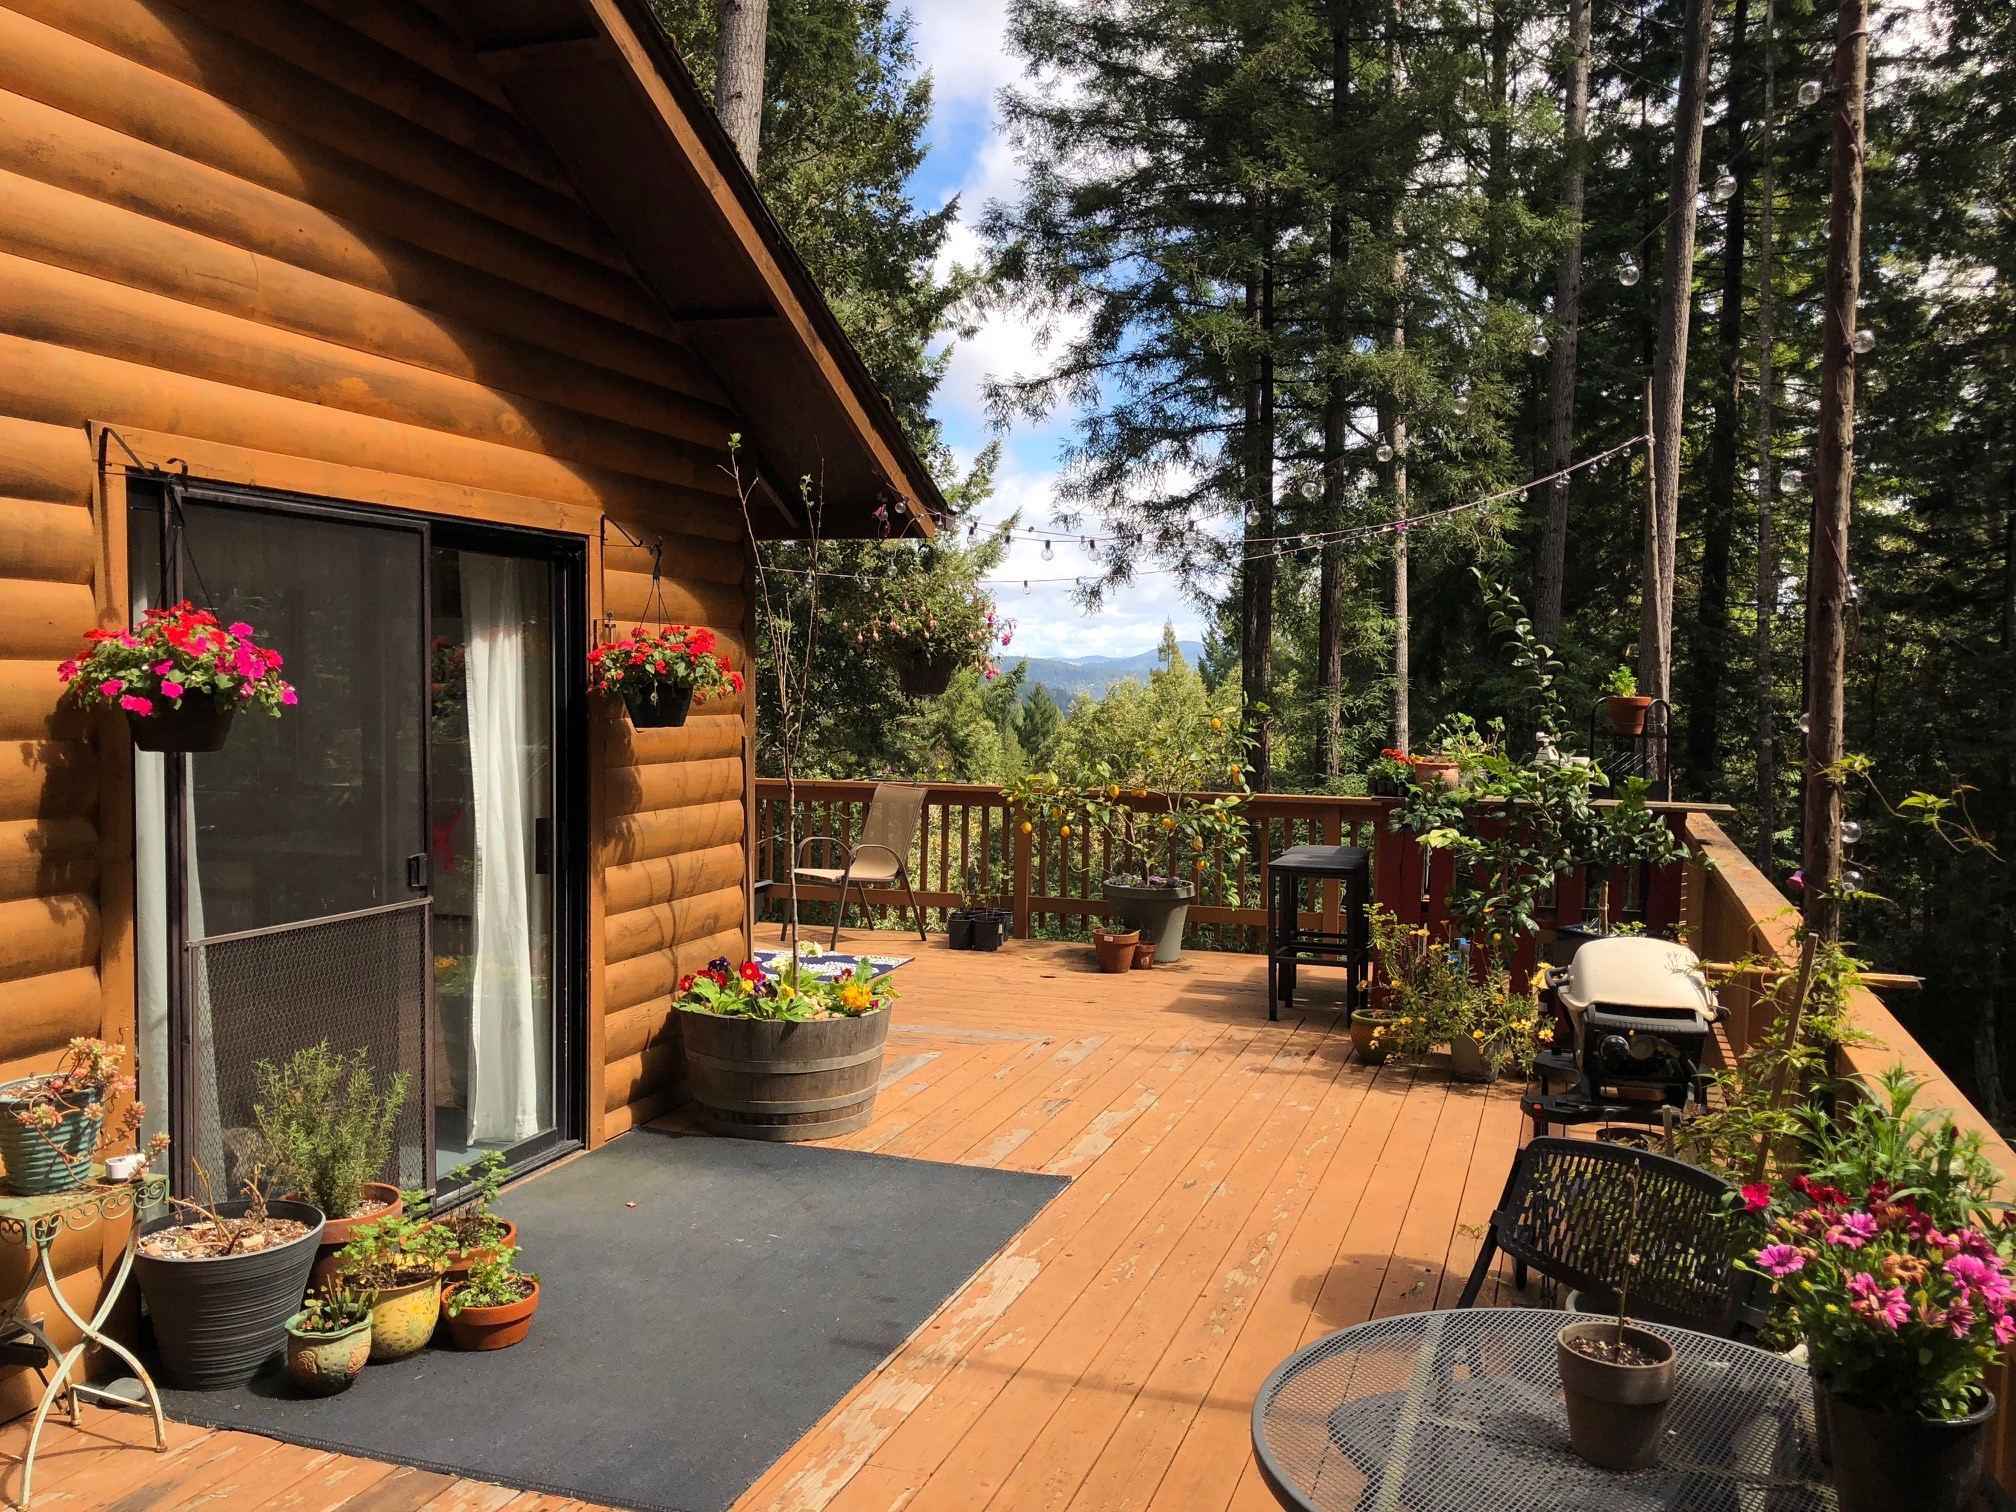 Deck and views from a cabin for sale in Philo, CA